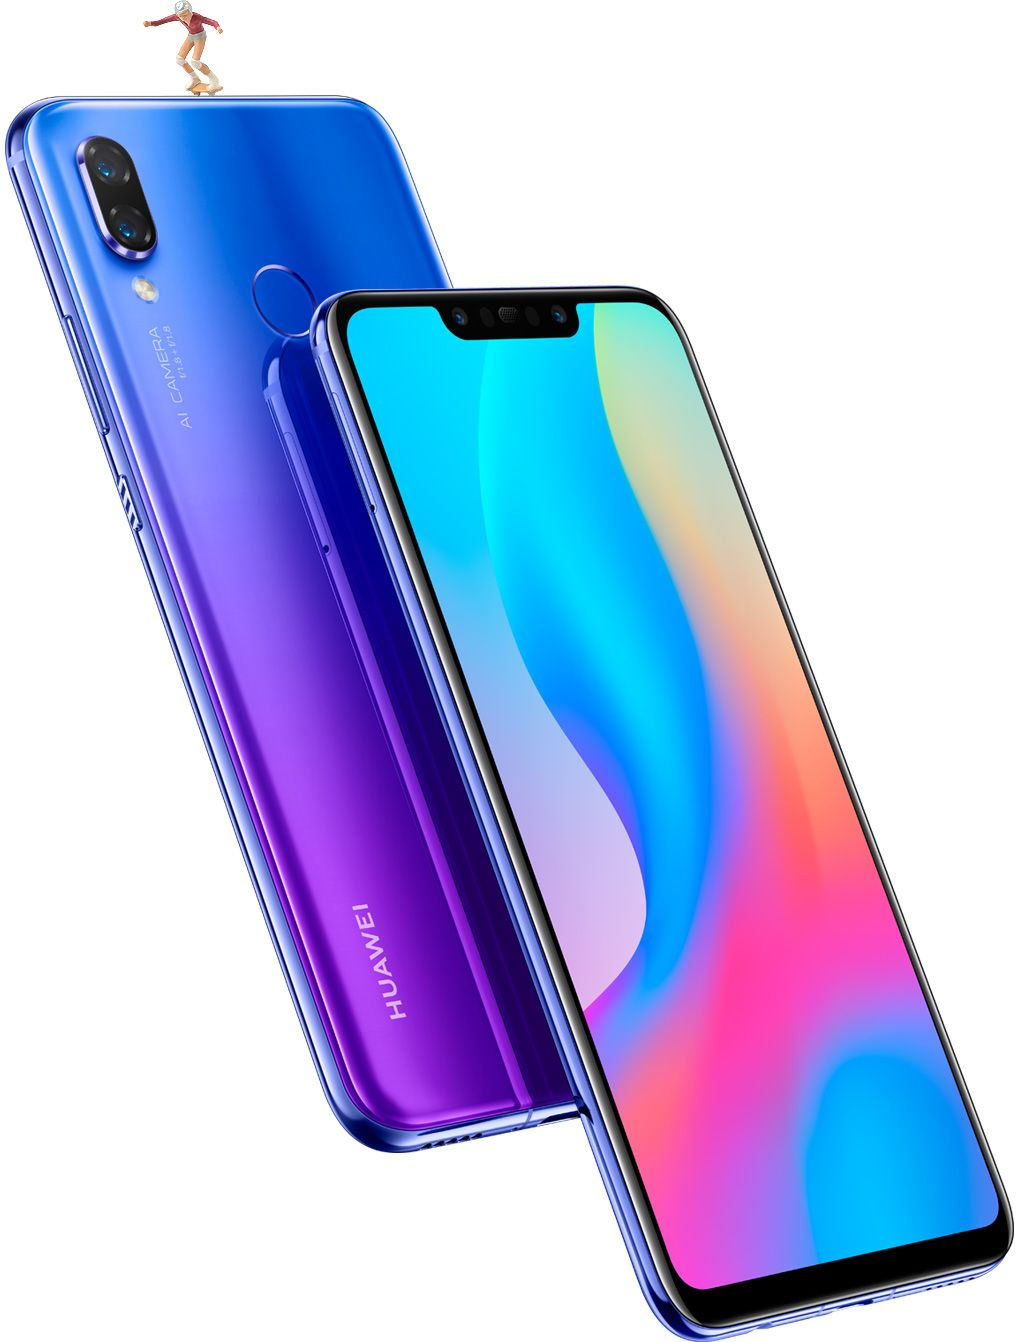 Huawei Nova 3 Front And Back Shot Sony Mobile Phones Sony Phone Phone